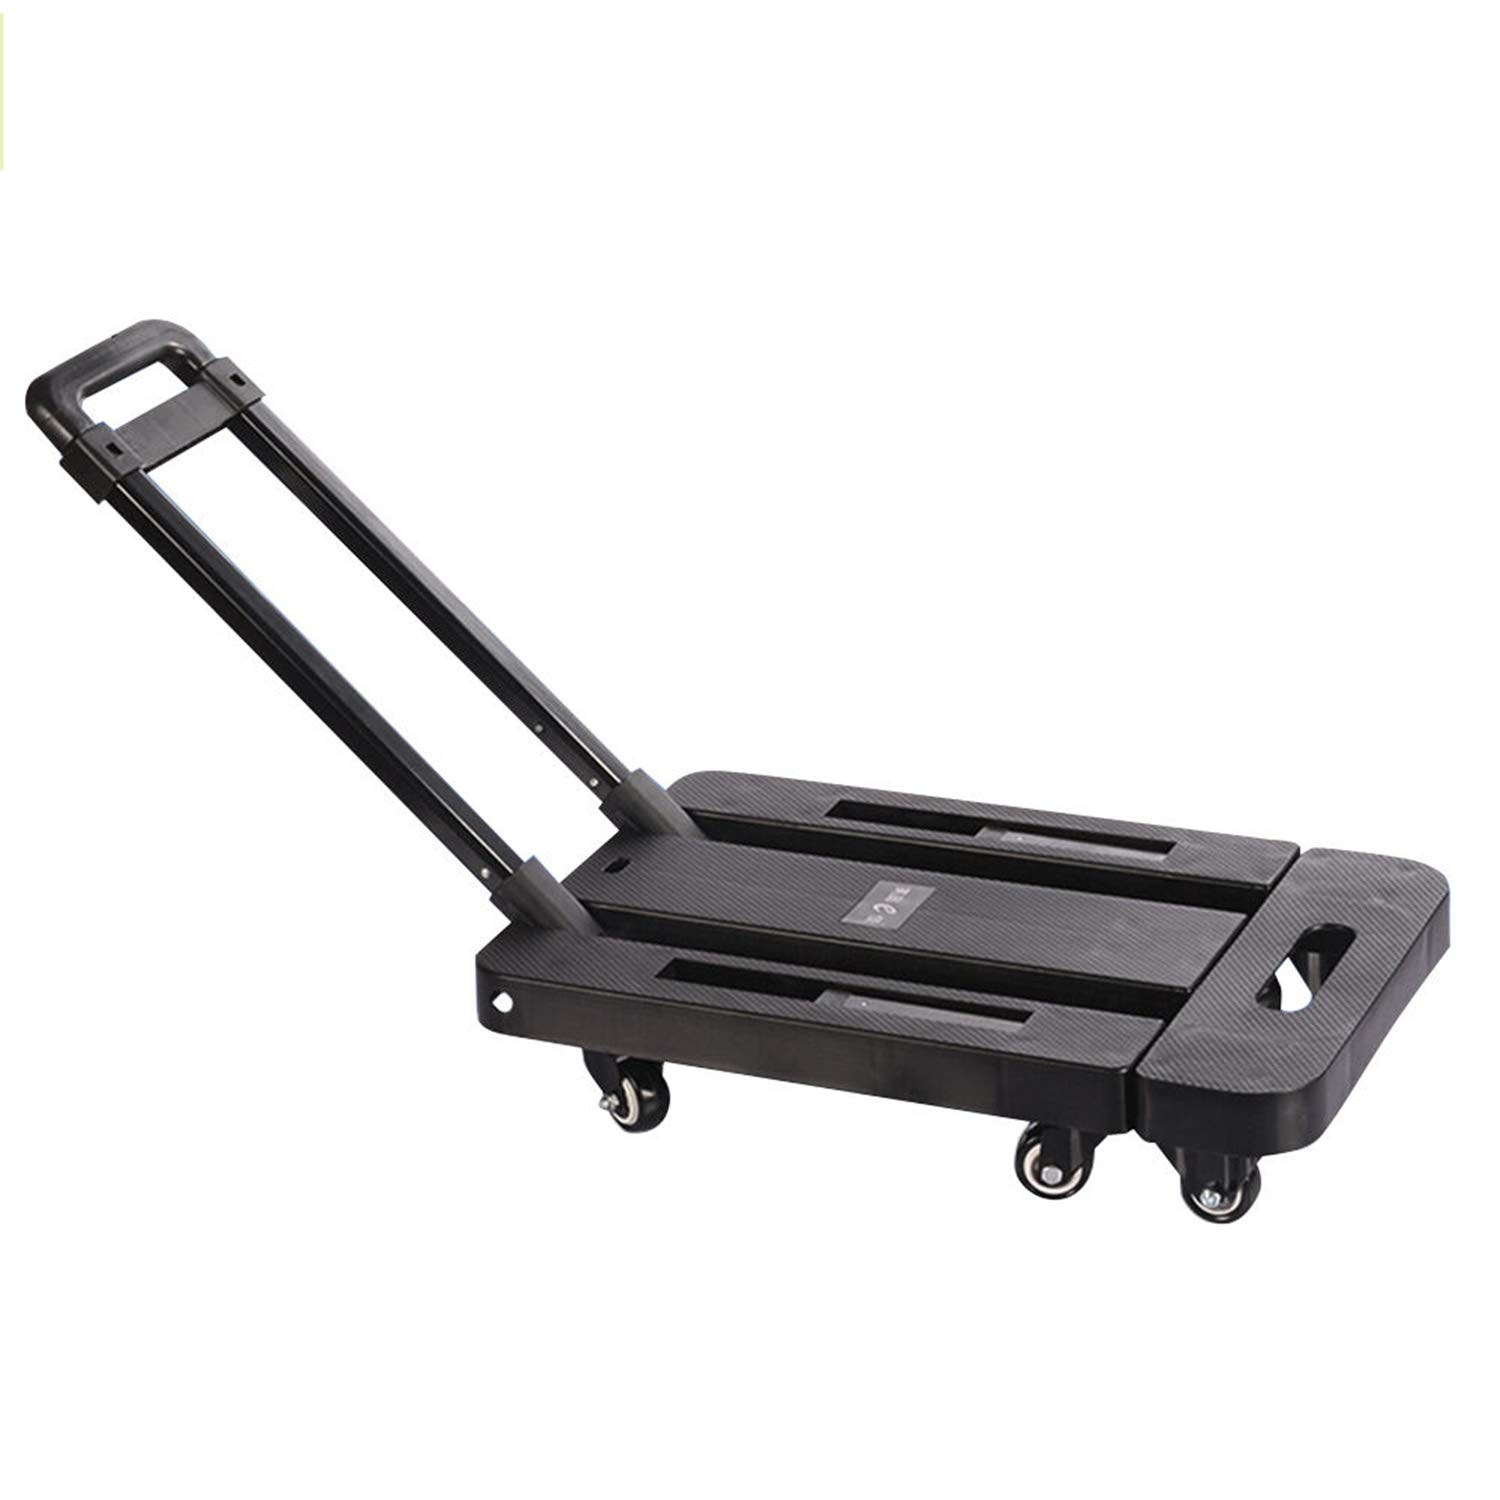 Hand Truck Folding Trolley 440 pounds Wheel Dolly Maximum Moving Luggage Adjustable by Heavens Tvcz